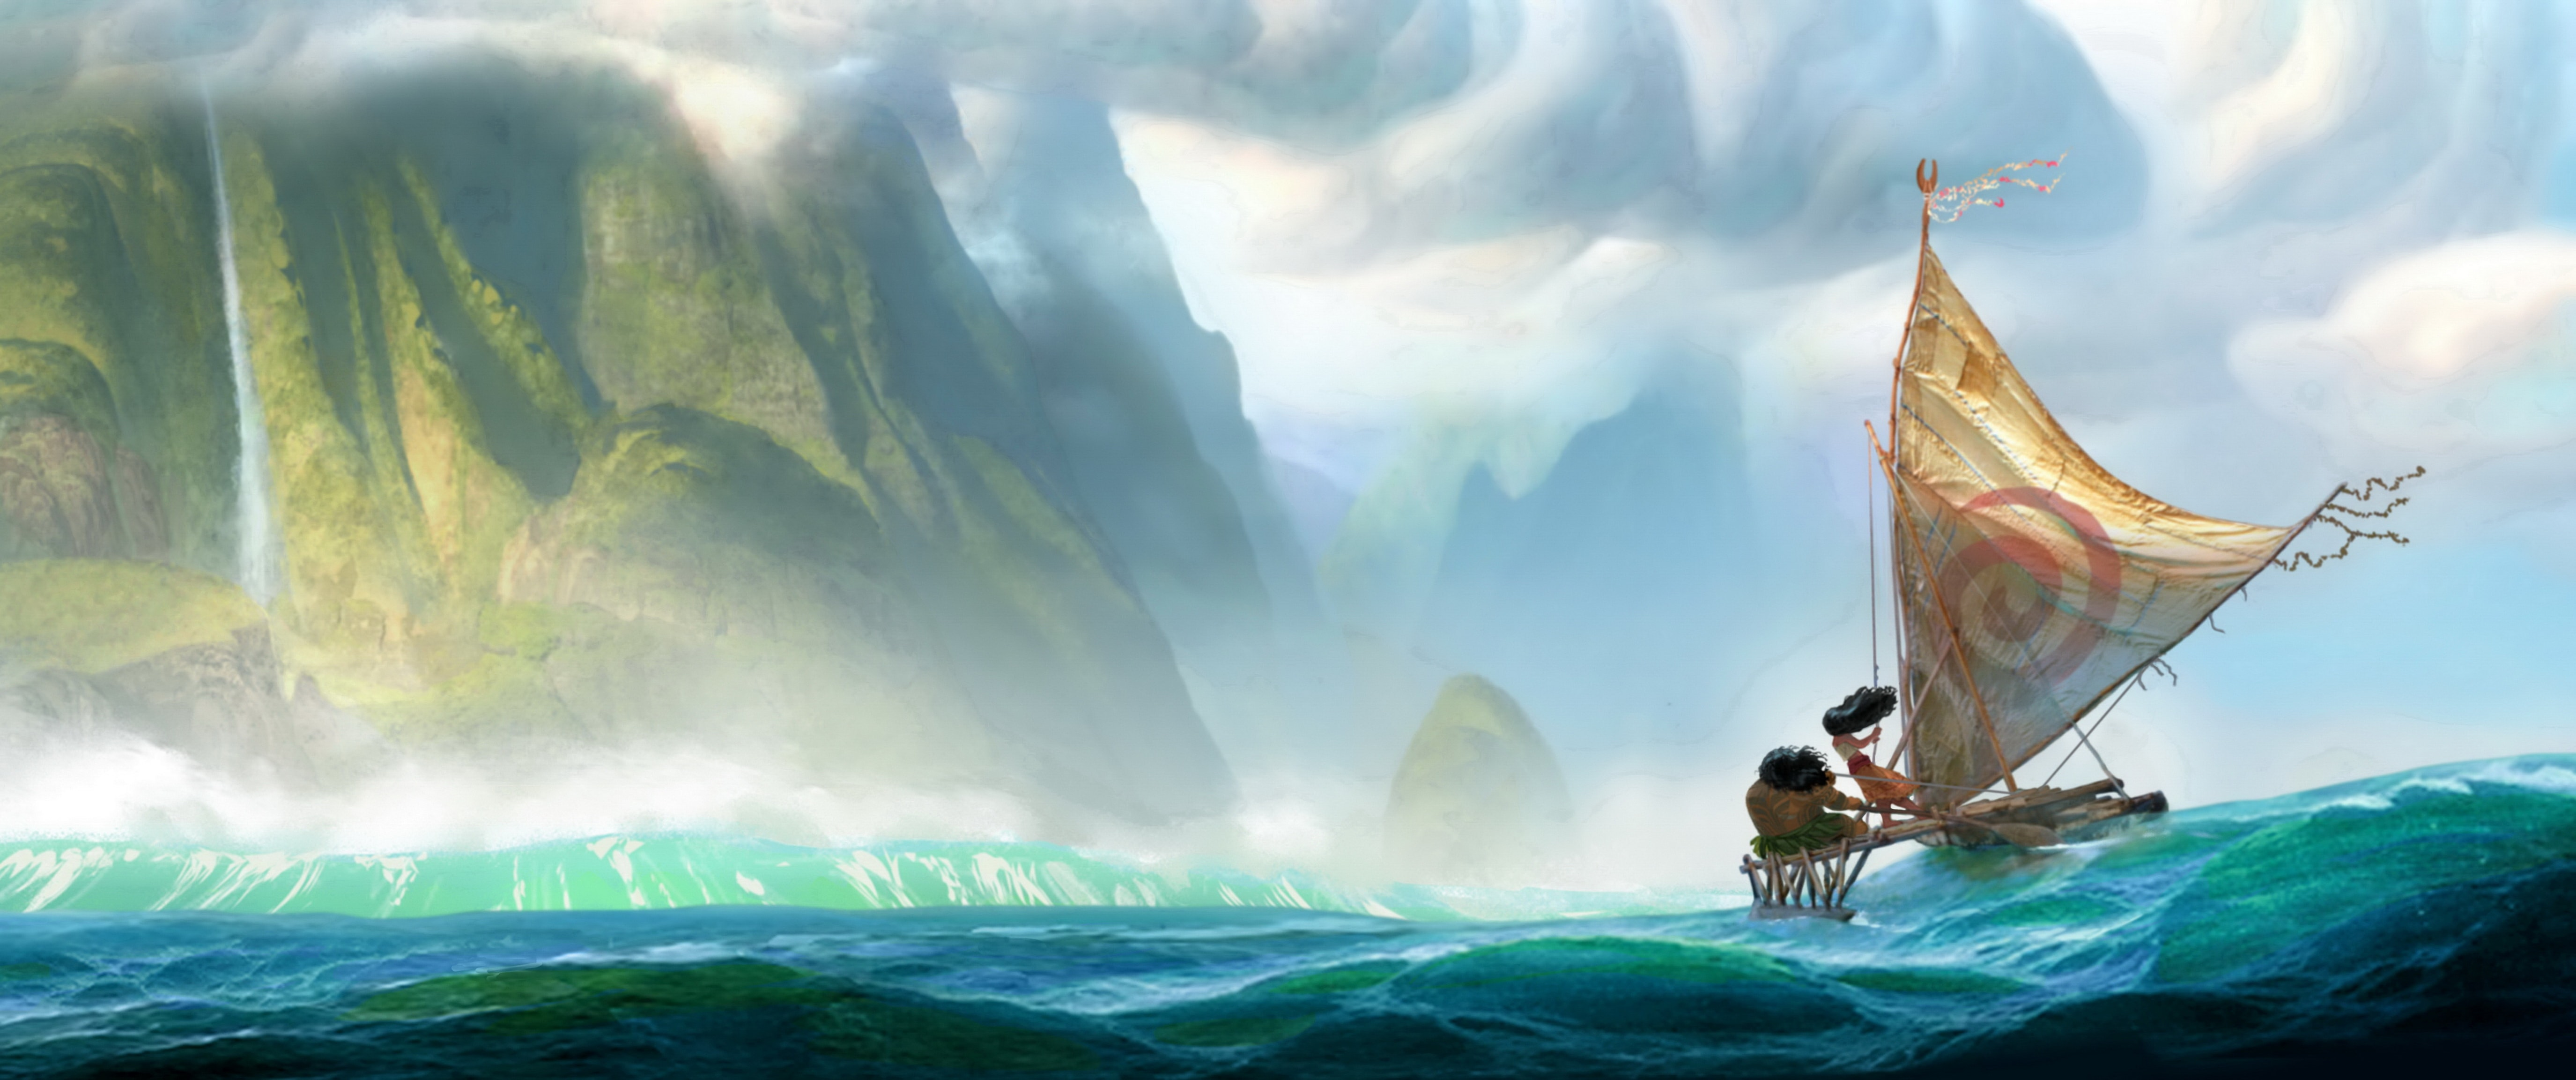 Moana Background